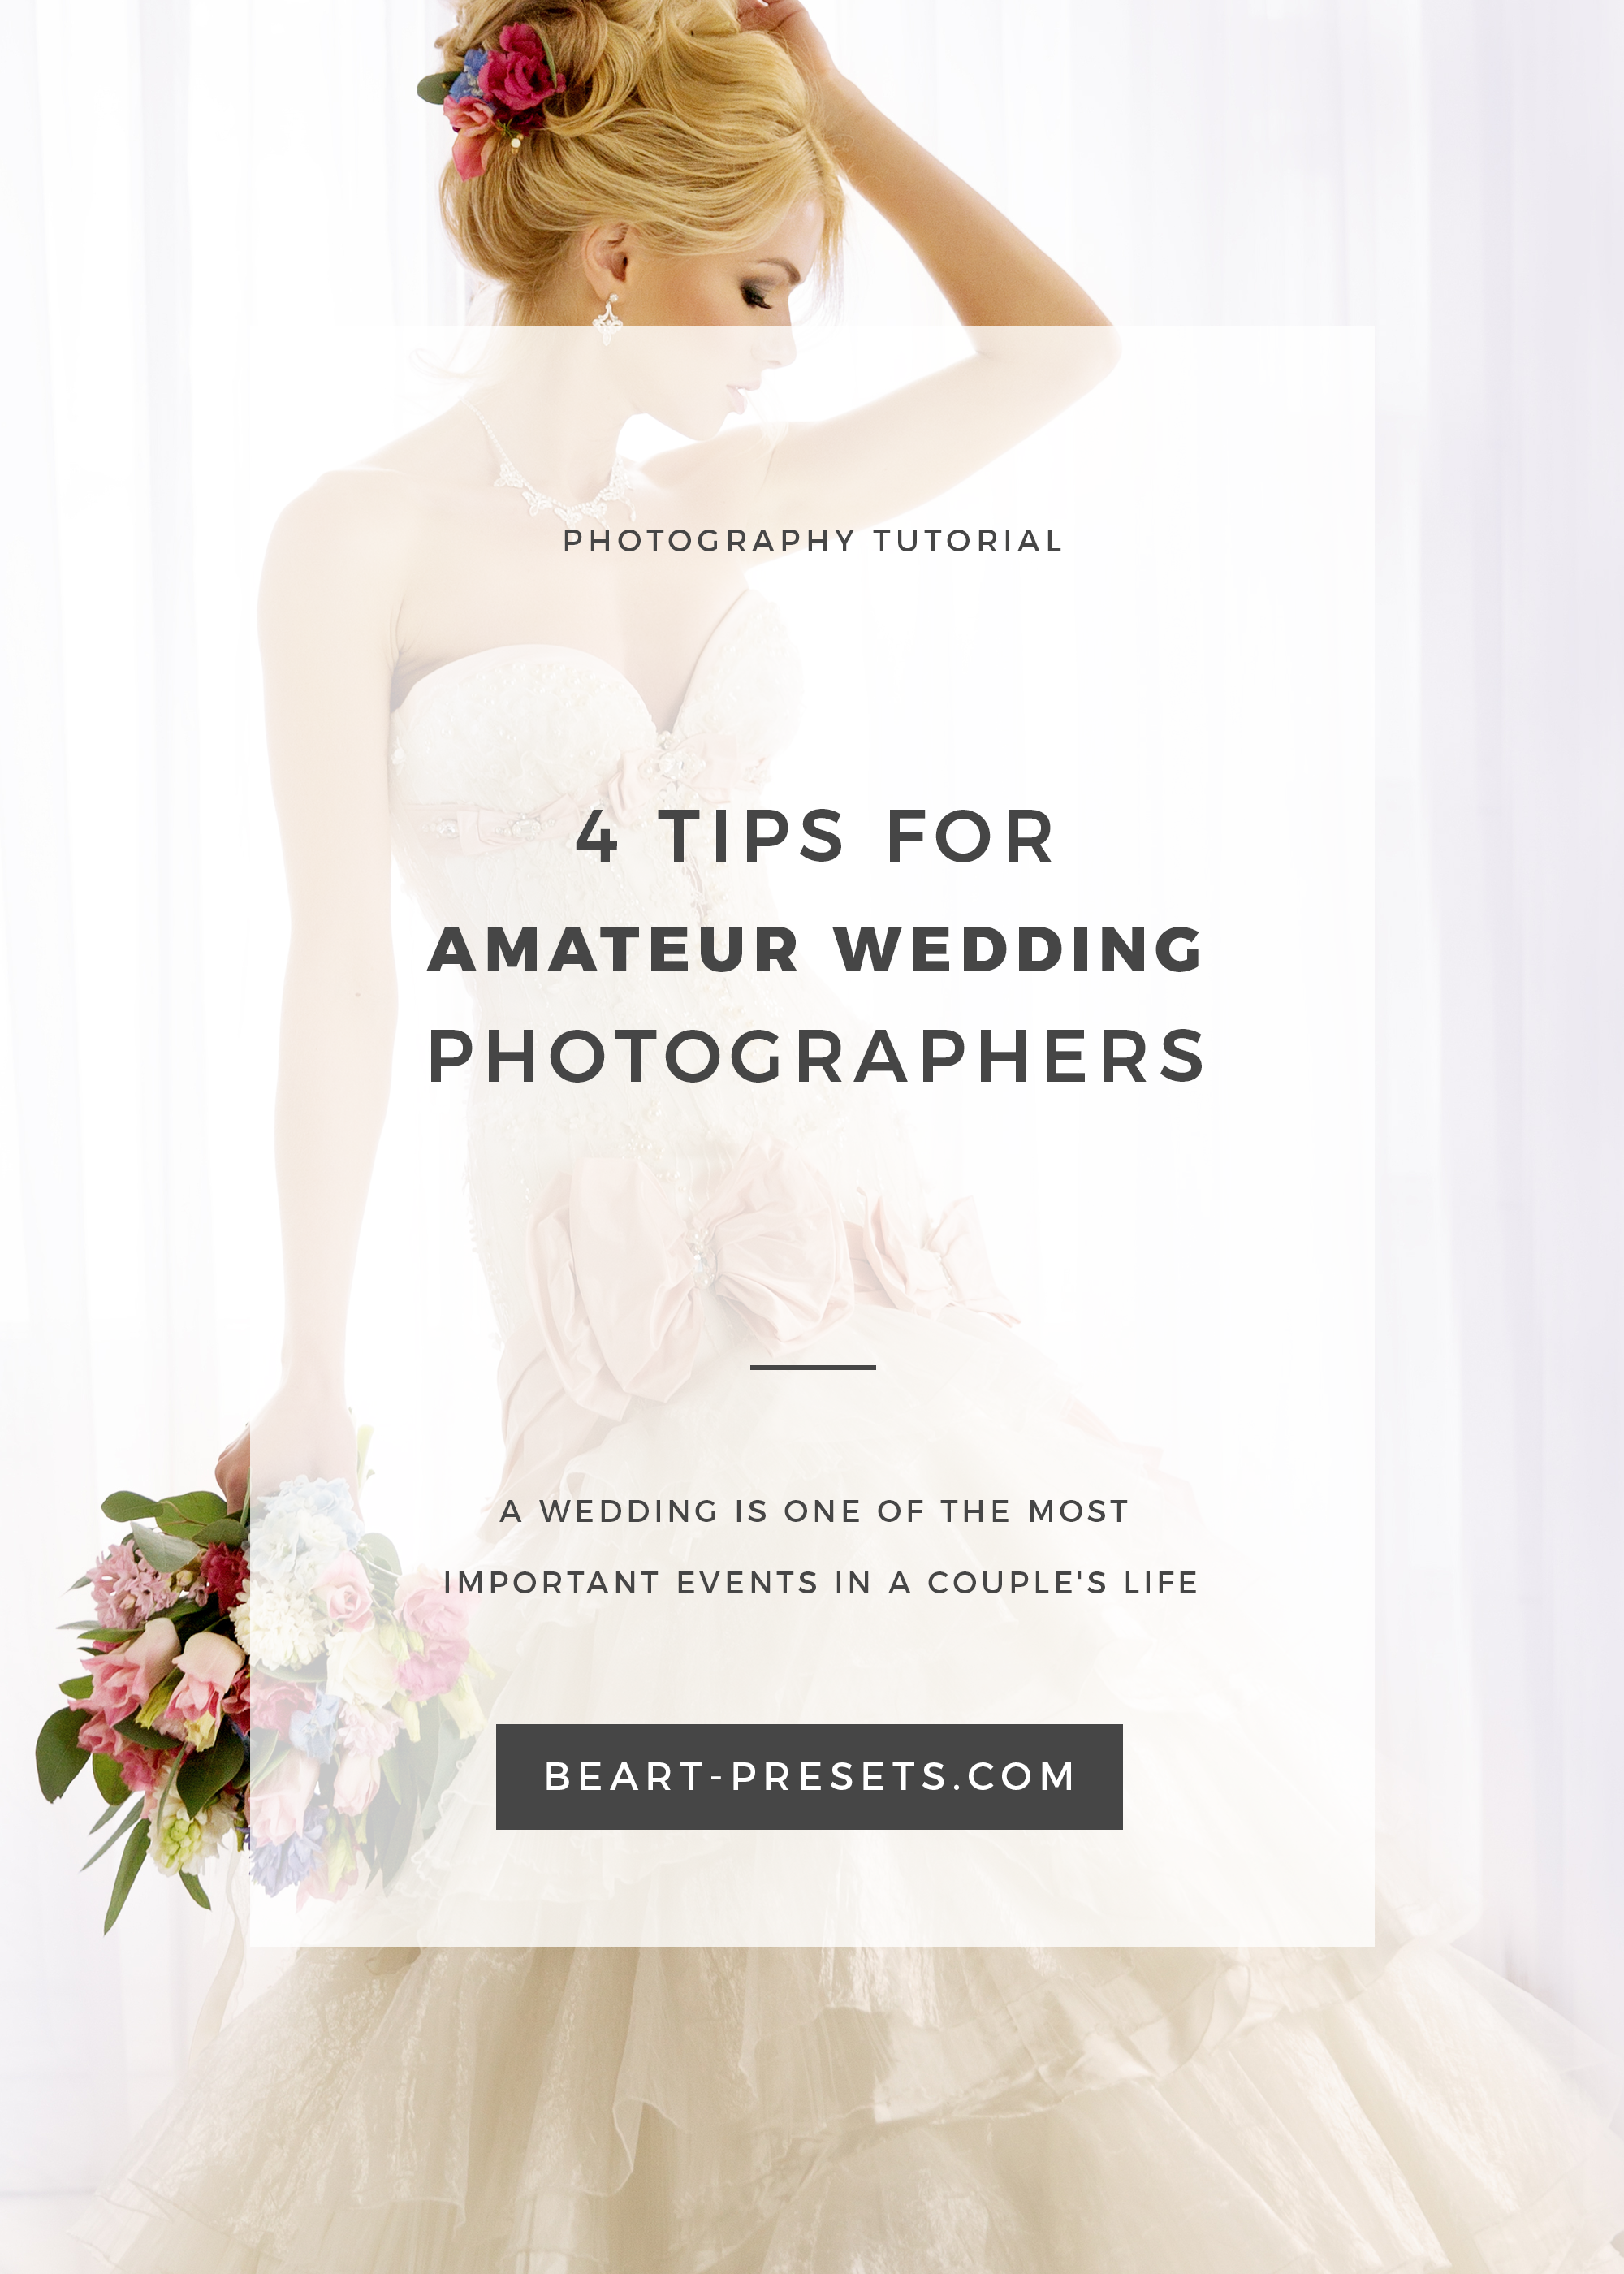 GREAT TIPS FOR WEDDING PHOTOGRAPHERS